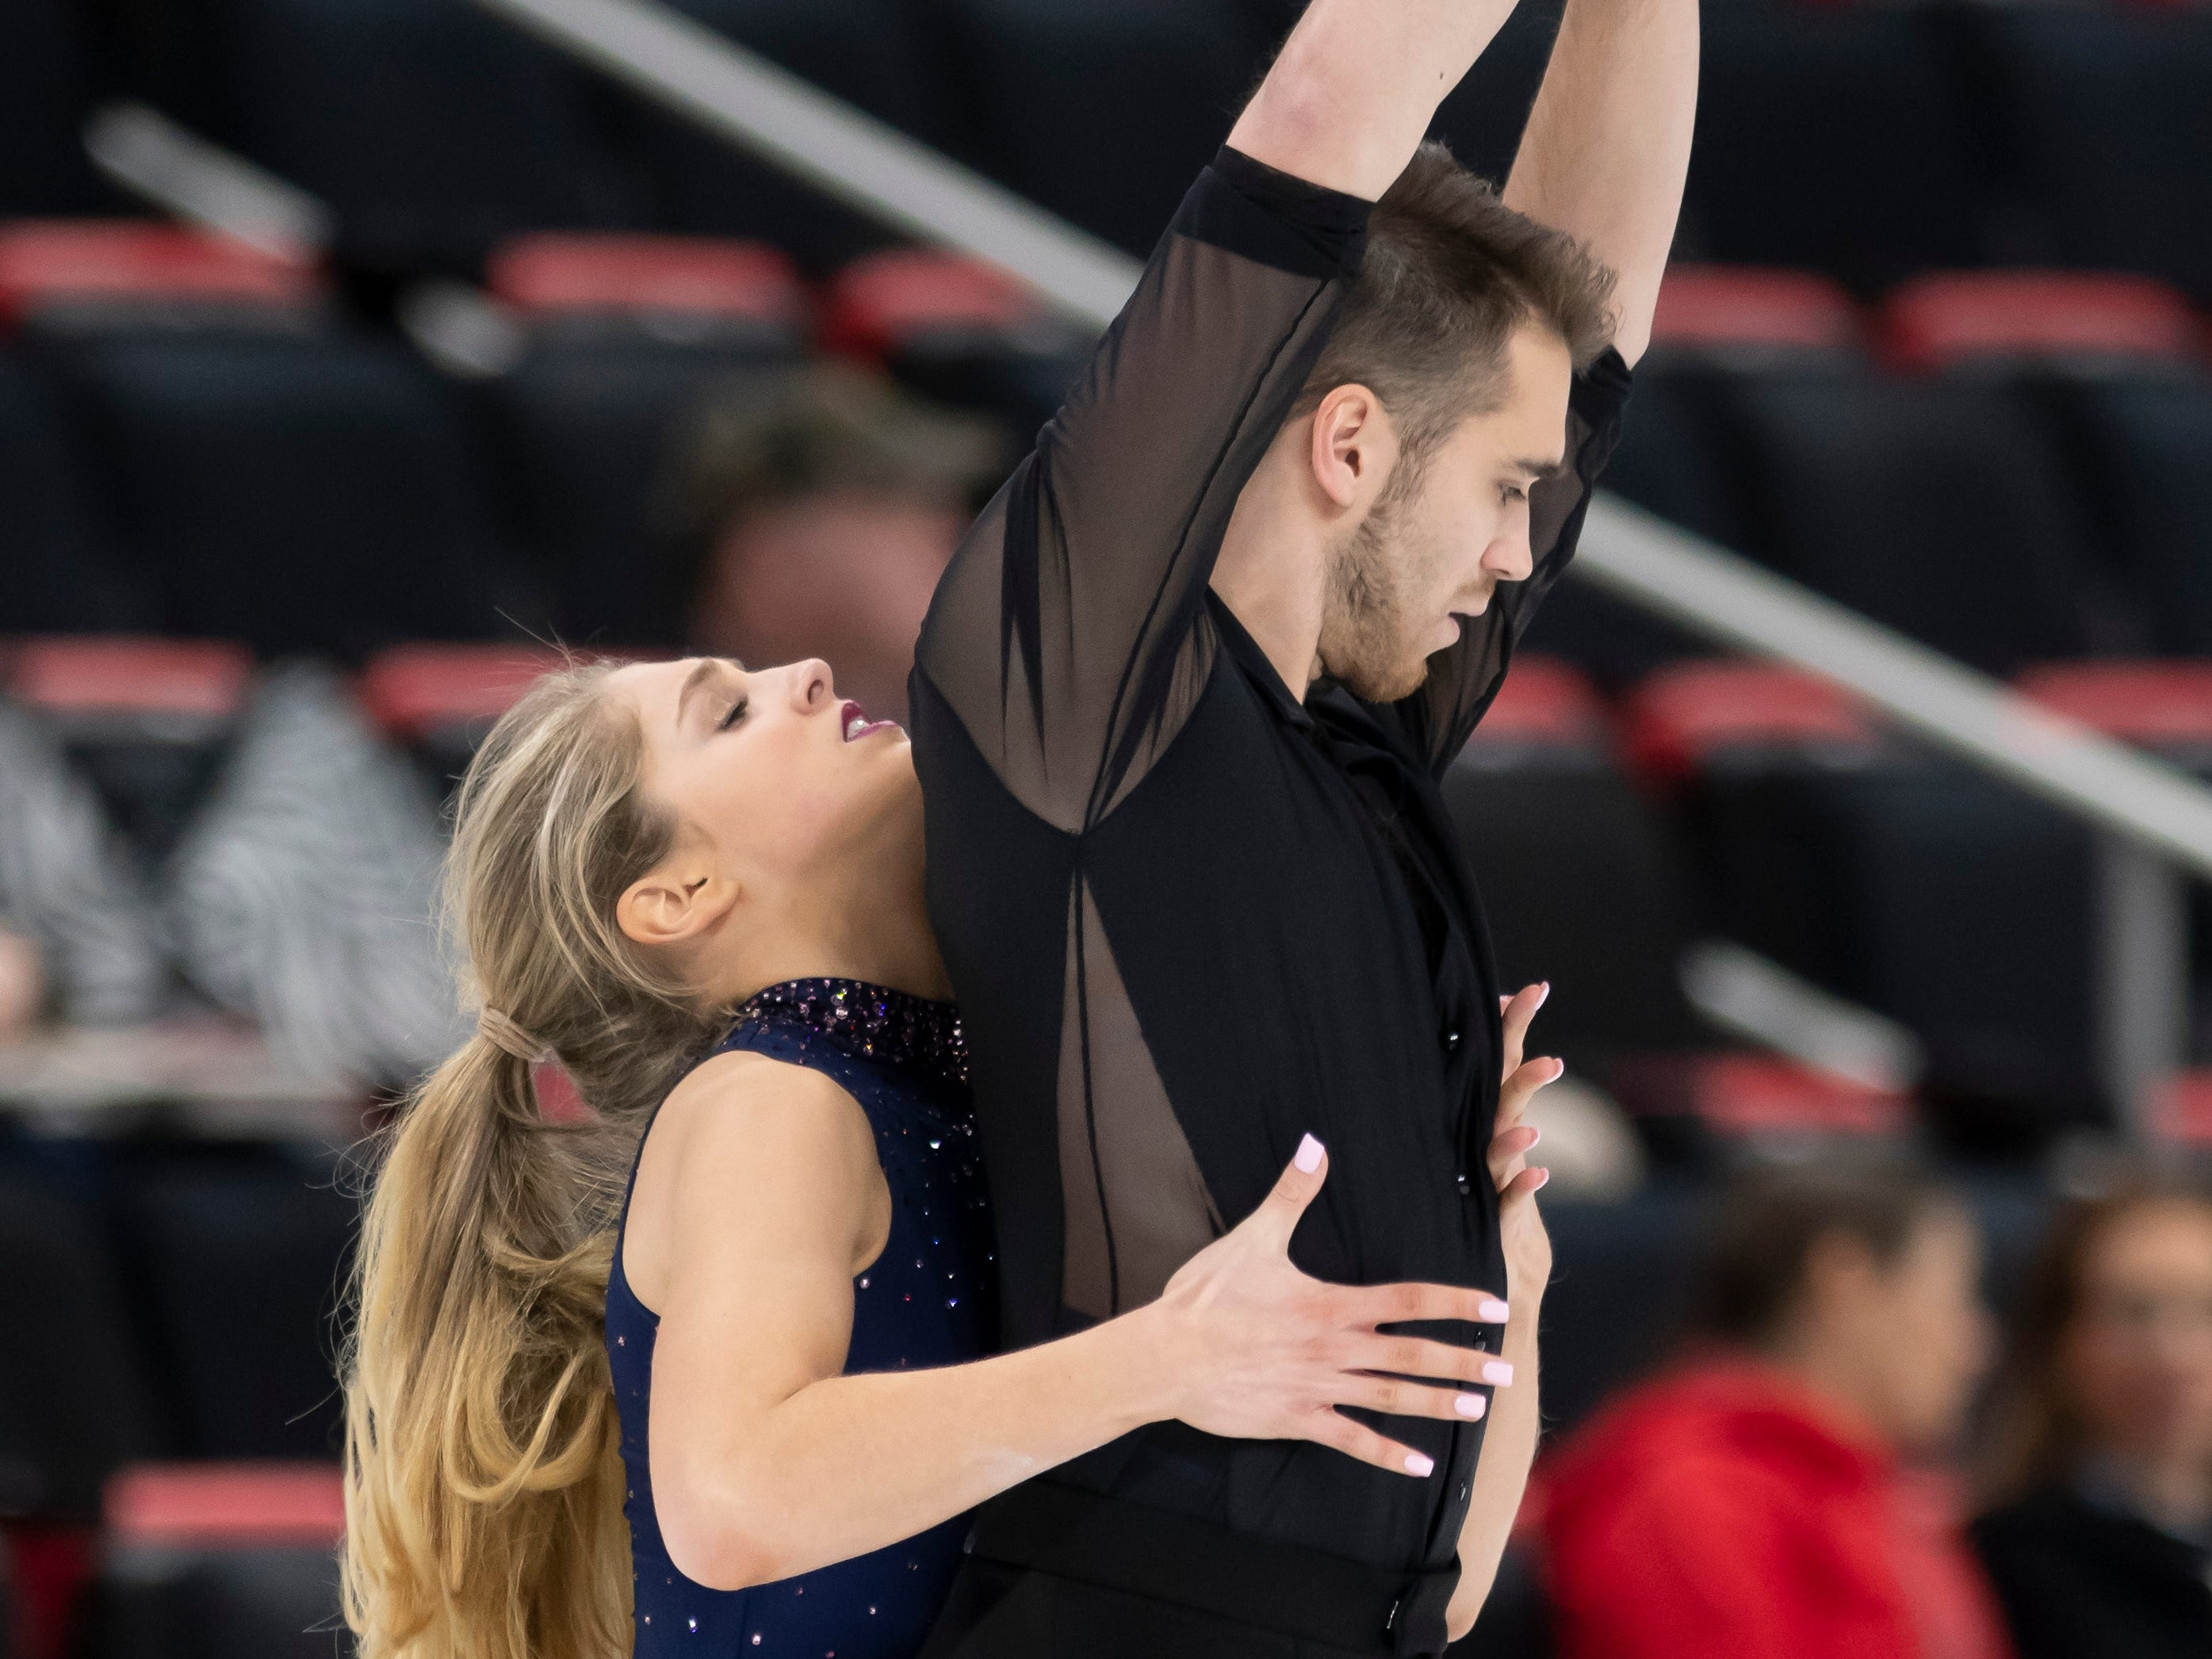 Lydia Erdman and Yuri Vlasenko practice for the dance competition. Both athletes have lived and trained in Canton.